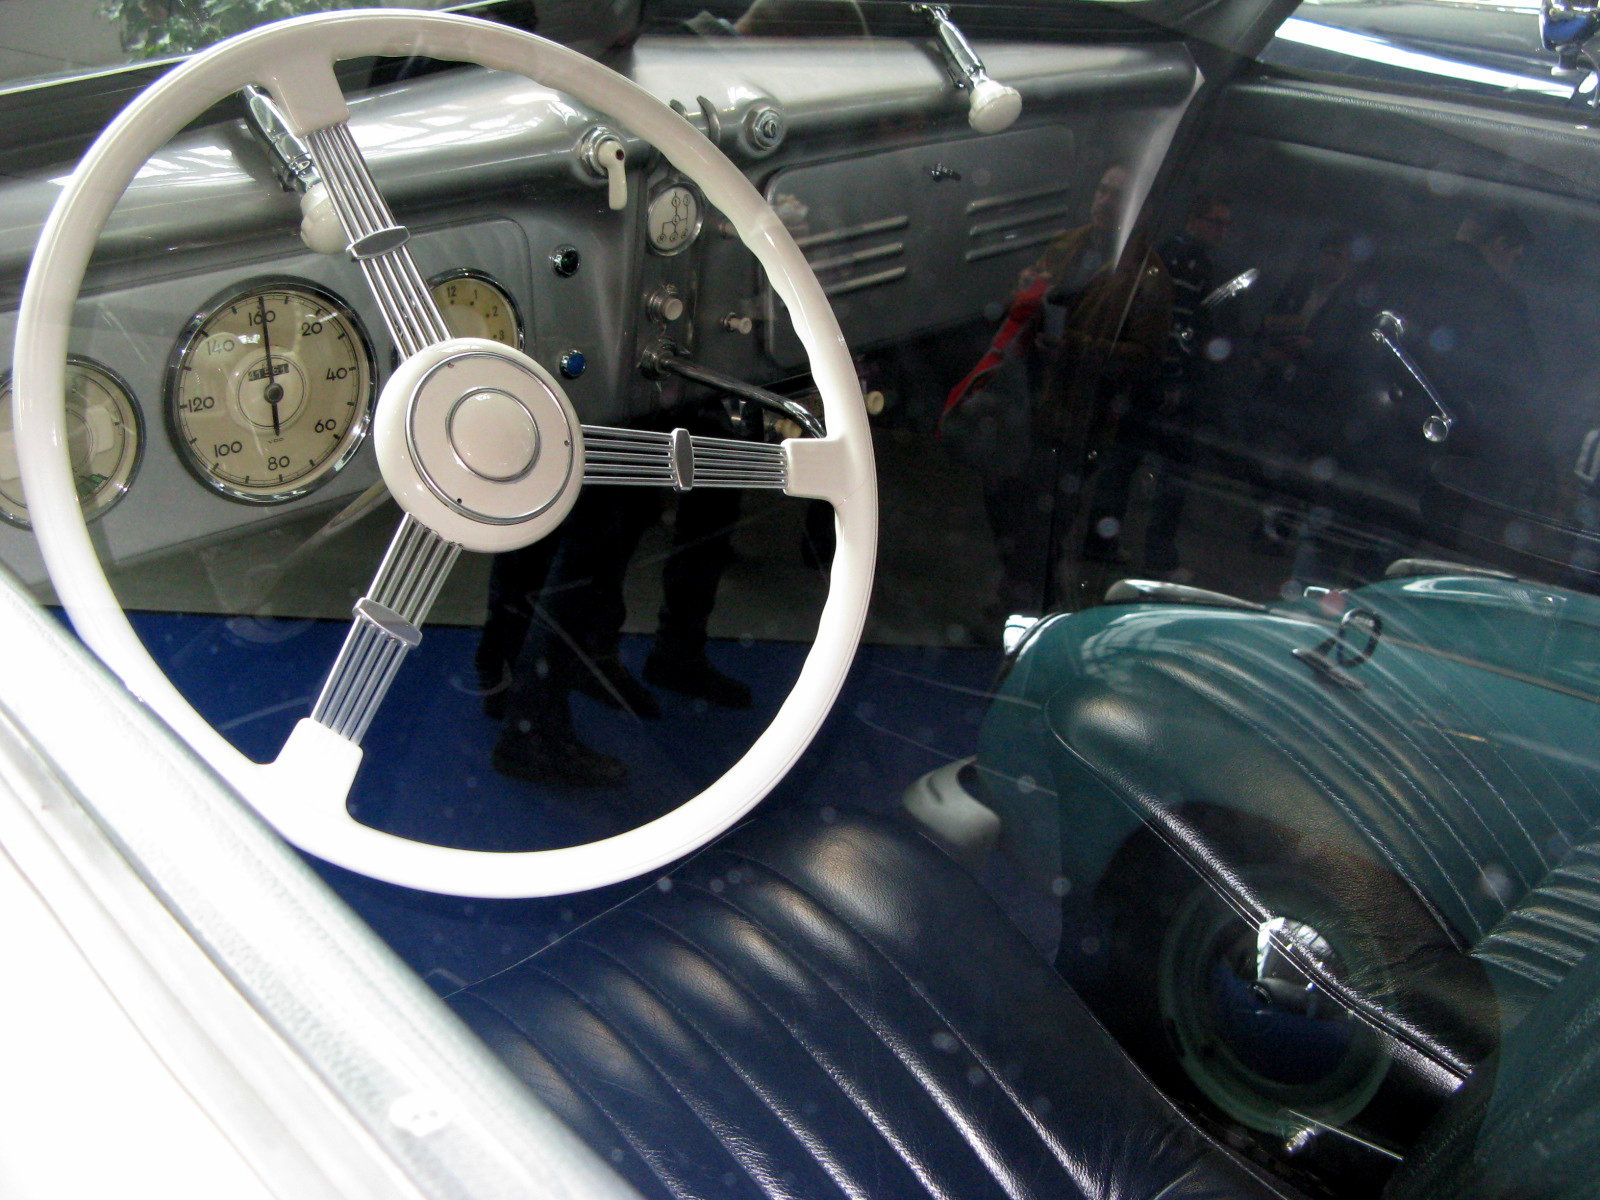 With its engine and gearbox set well forward designer Karl Jenschke decided to mount the gear lever in the centre of the dashboard as is visible in this picture. (Picture courtesy wikimedia).